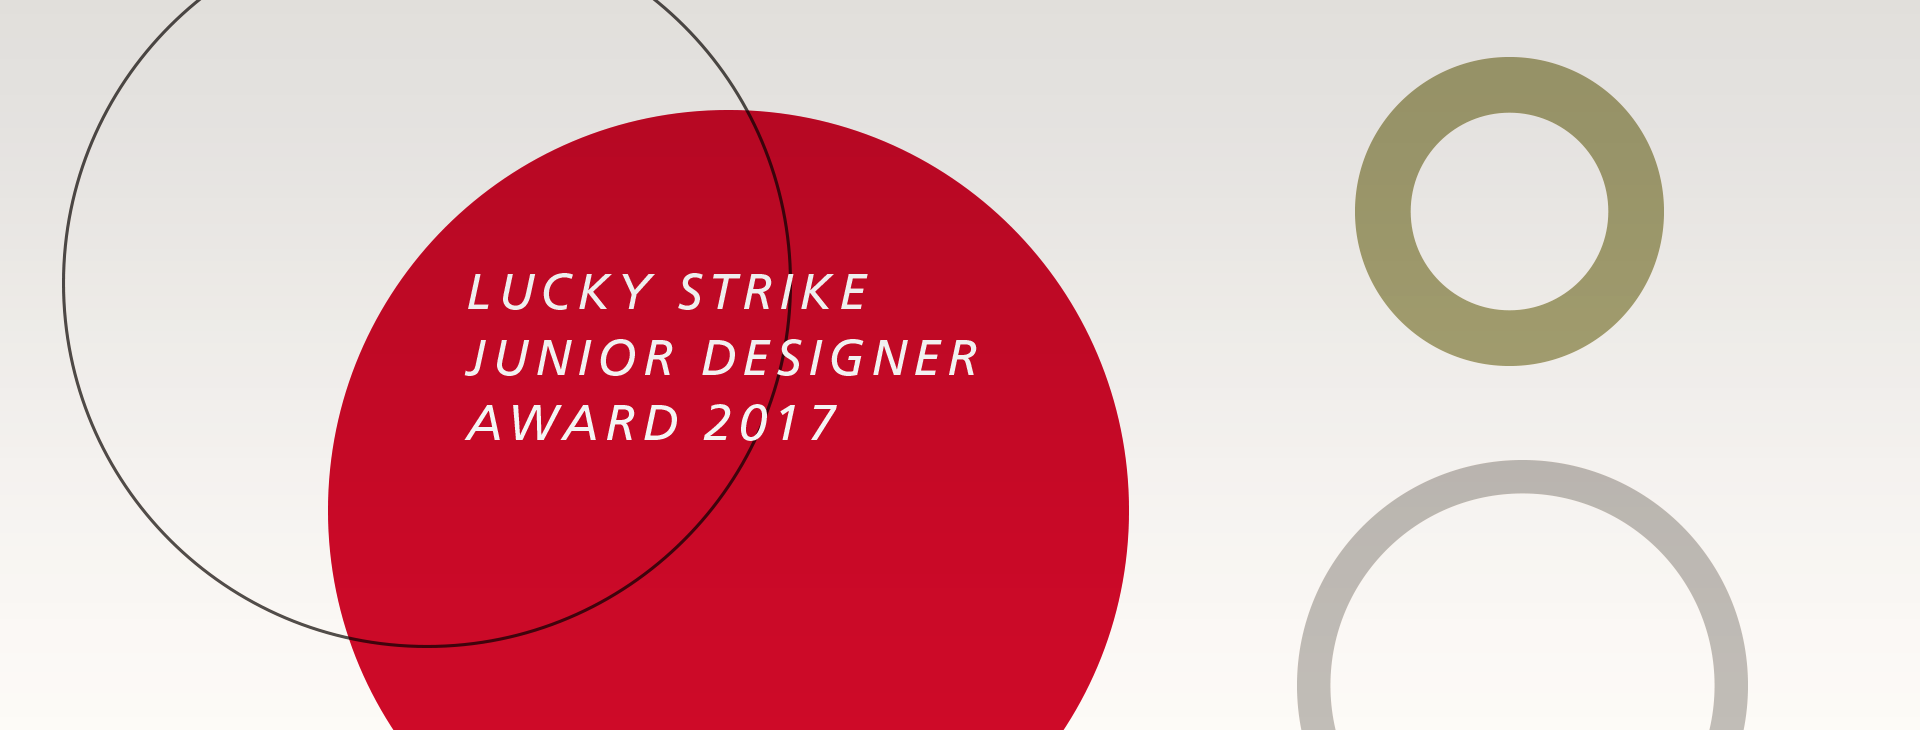 lucky strike junior designer award 2017 stilwerk news. Black Bedroom Furniture Sets. Home Design Ideas